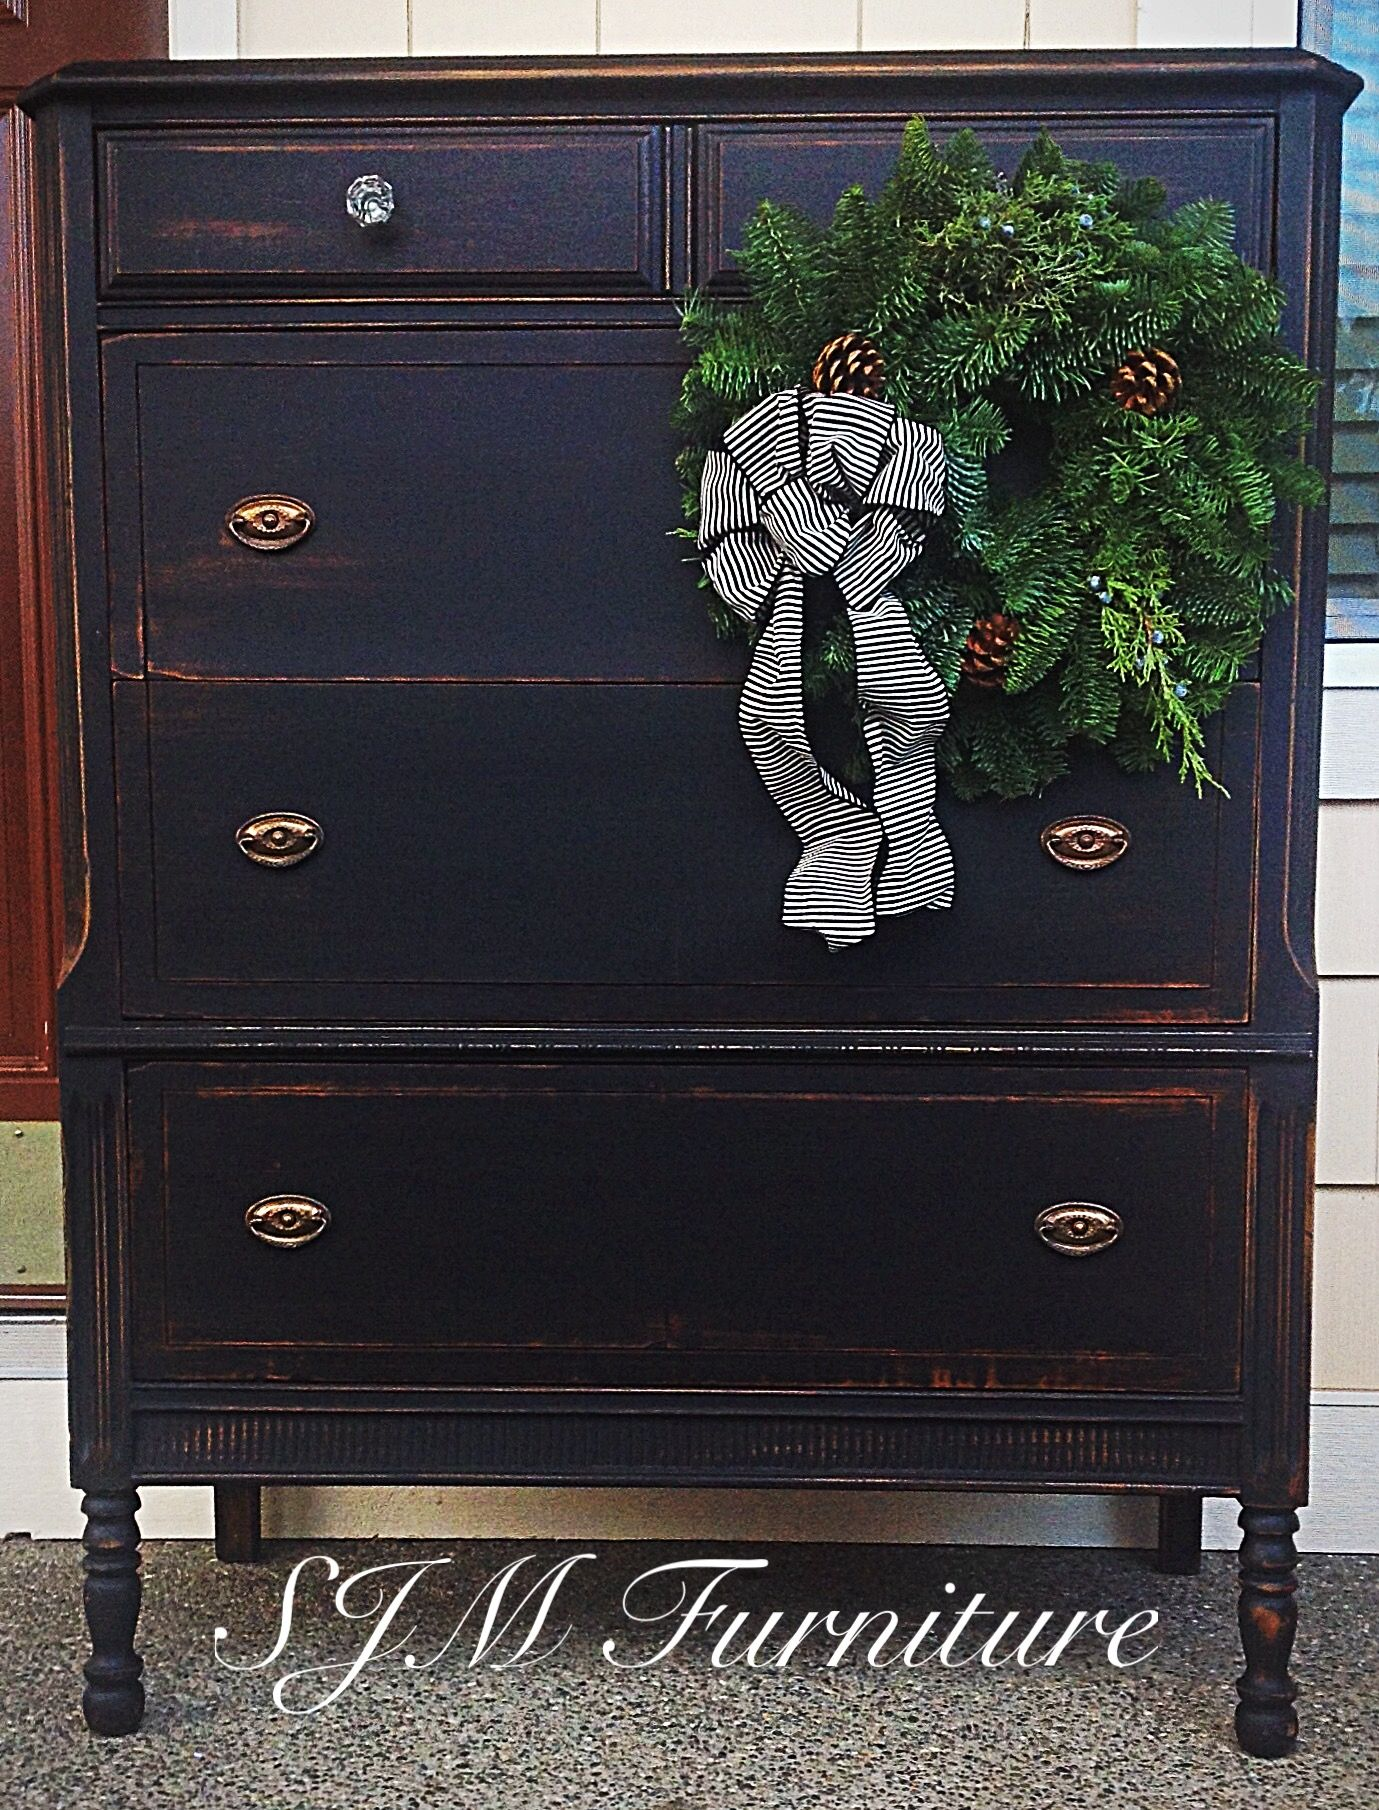 Antique Dresser Painted In Black Chalk Paint Distressed And Sealed With Clear Wax Original Hardware By Slm Black Chalk Paint Antique Dresser Redo Furniture